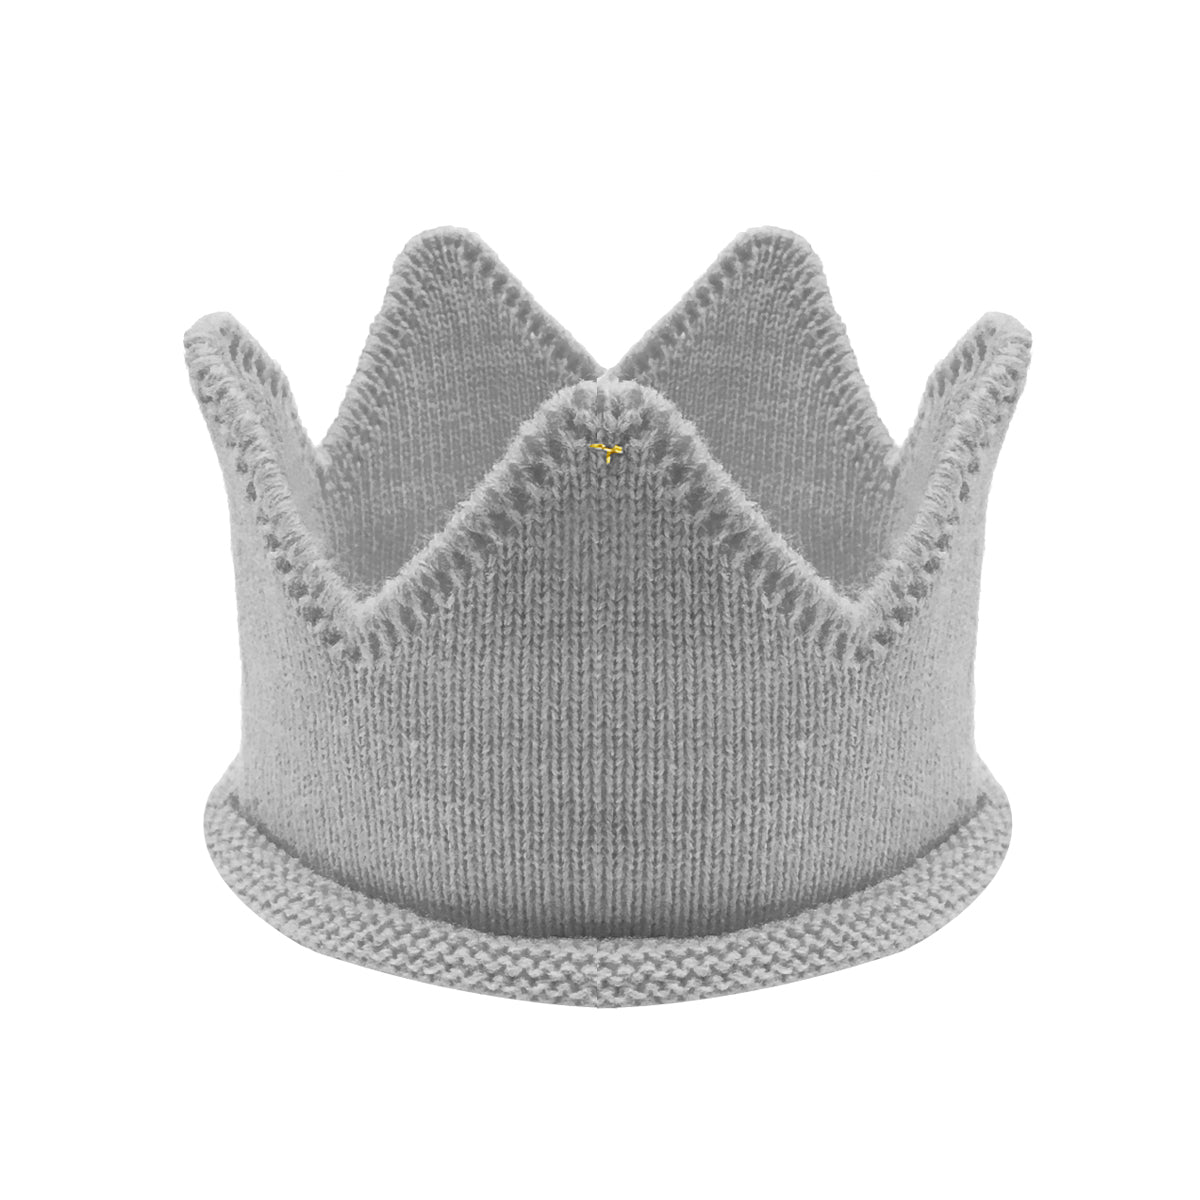 Wrapables Baby Boy & Girl Birthday Party Knitted Crown Headband Beanie Cap Hat